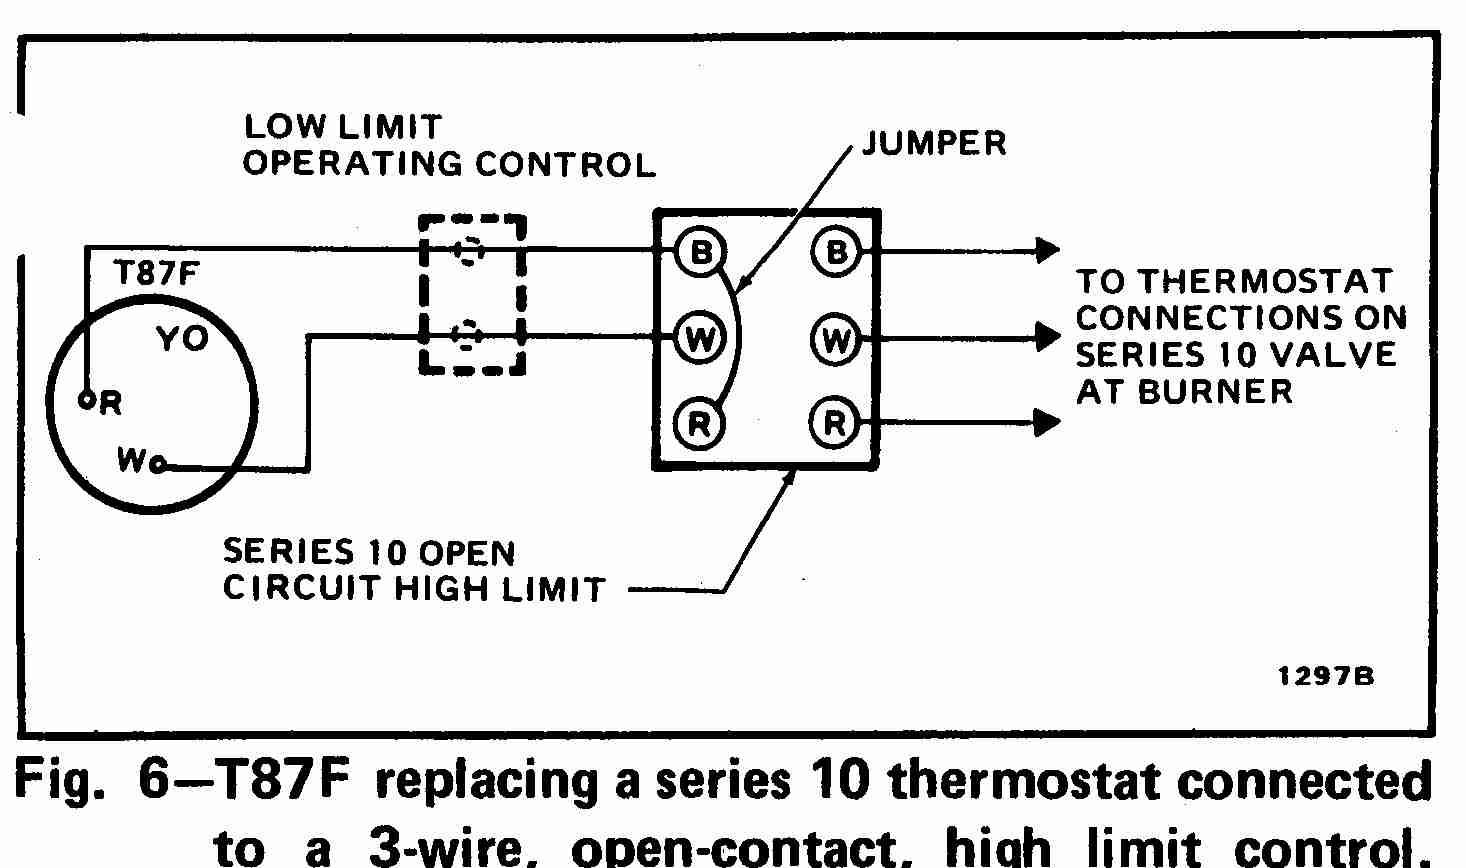 Gas Wall Furnace Control Wiring - Wiring Diagram M4 Gas Furnace Wiring Diagram Connection on